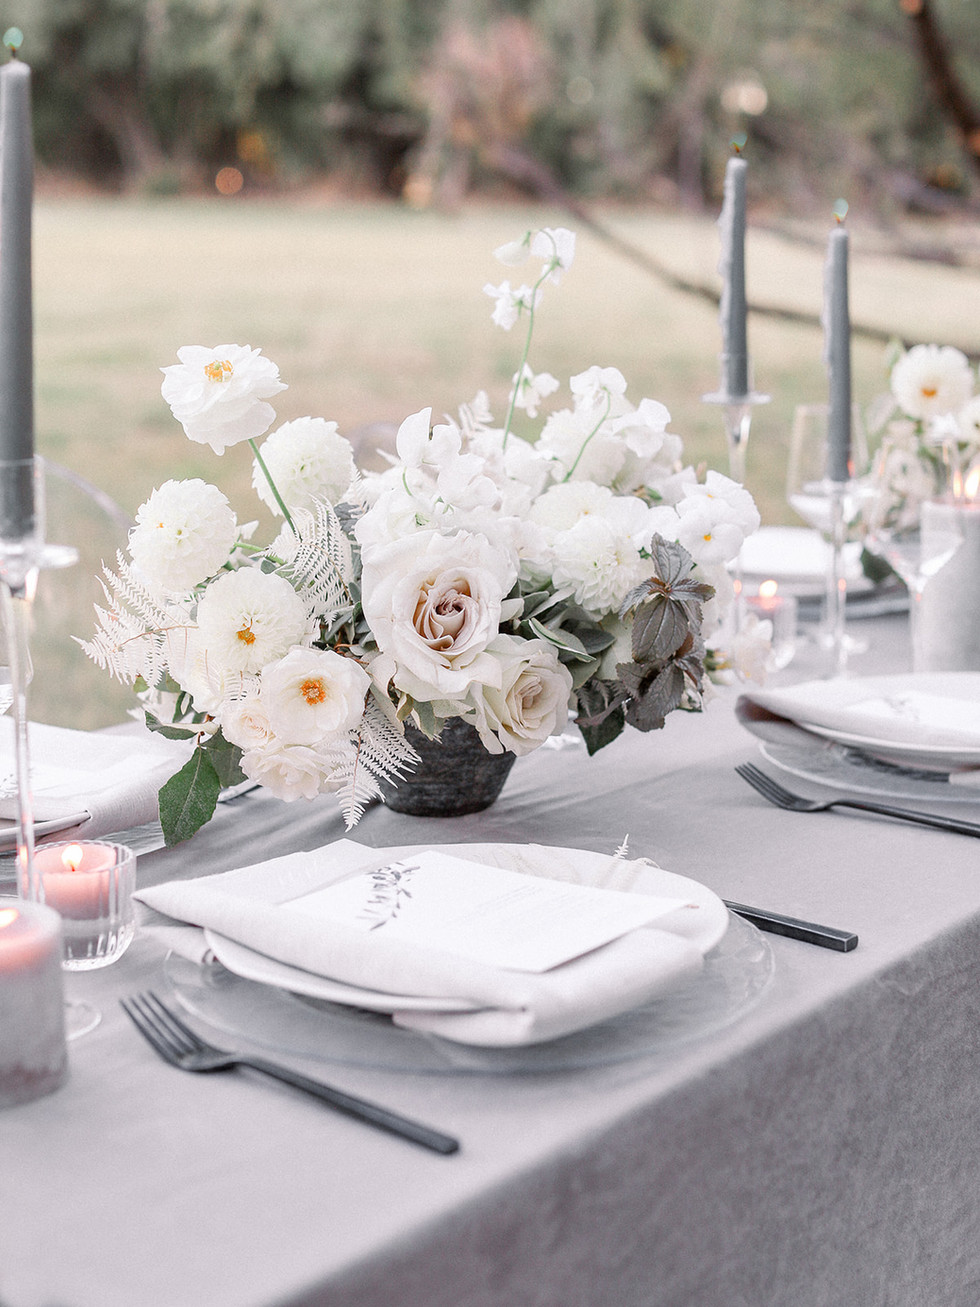 Centerpiece with white dahlias, pansies, sweet pea and Earl Grey roses. Photo: Sarah Brooke